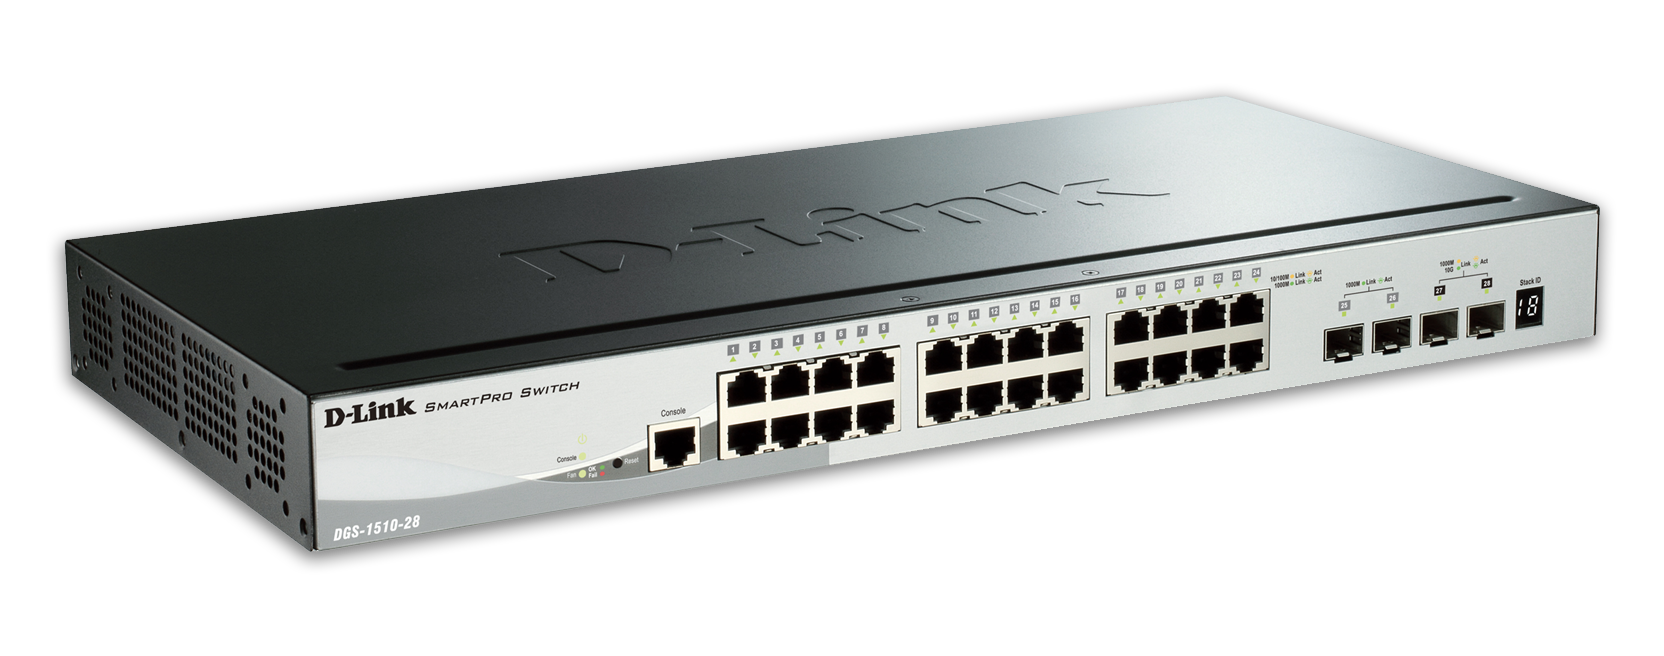 D-Link DGS-1510-28 Switch 24xGbit + 2xSFP + 2xSFP+